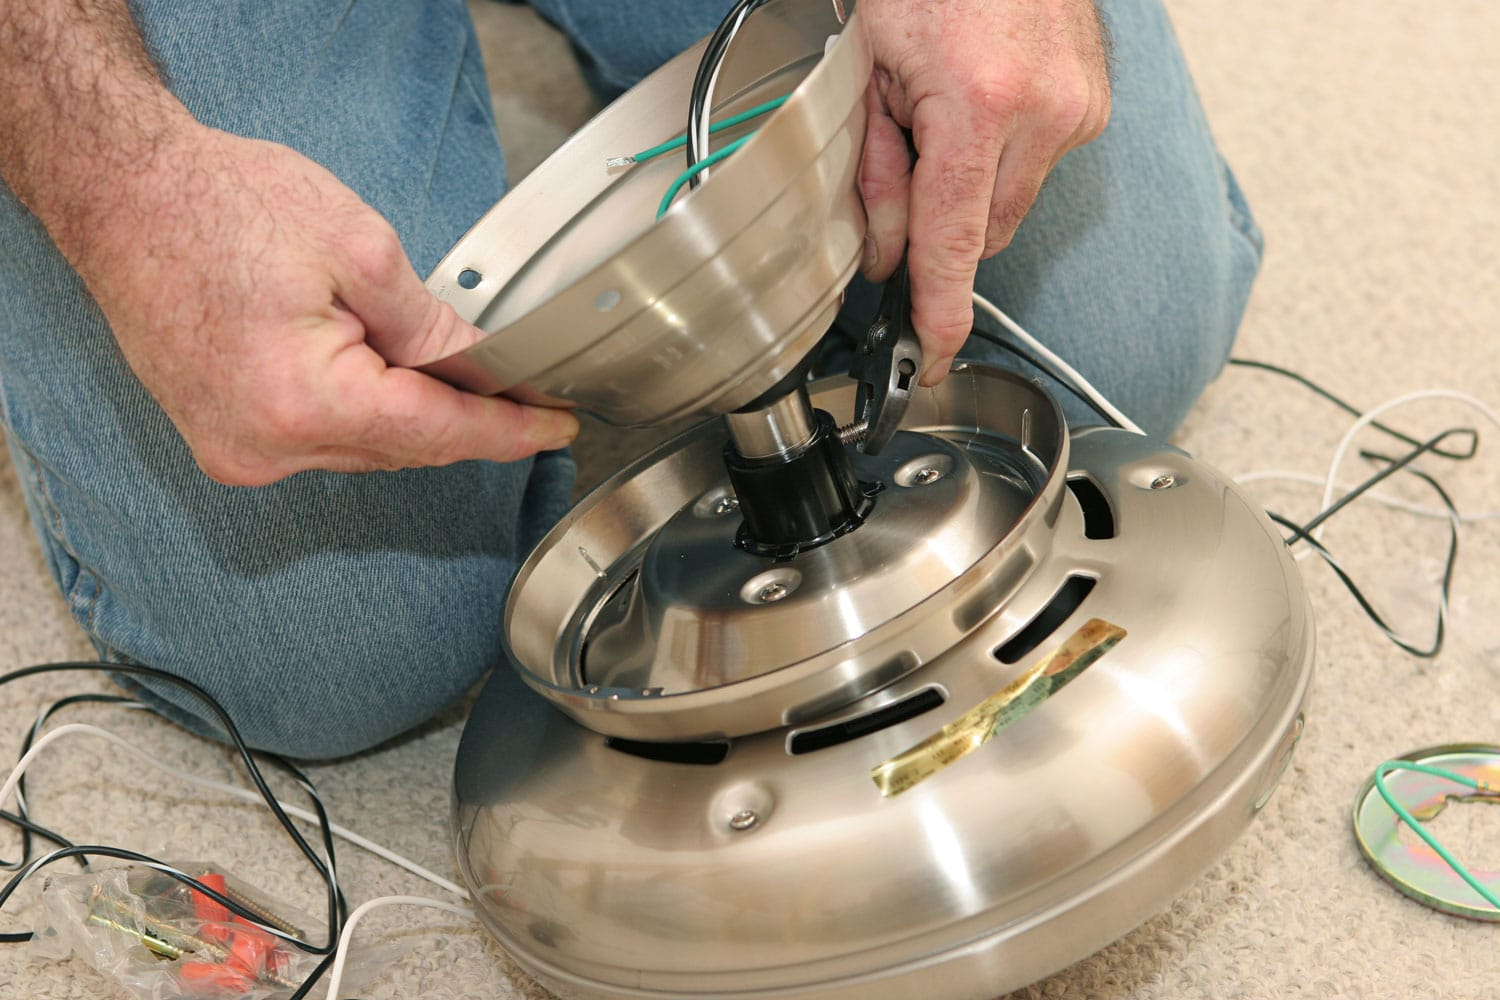 An electrician assembling a ceiling fan motor. All work is being performed by a licensed master electrician according to National Electric Code standards